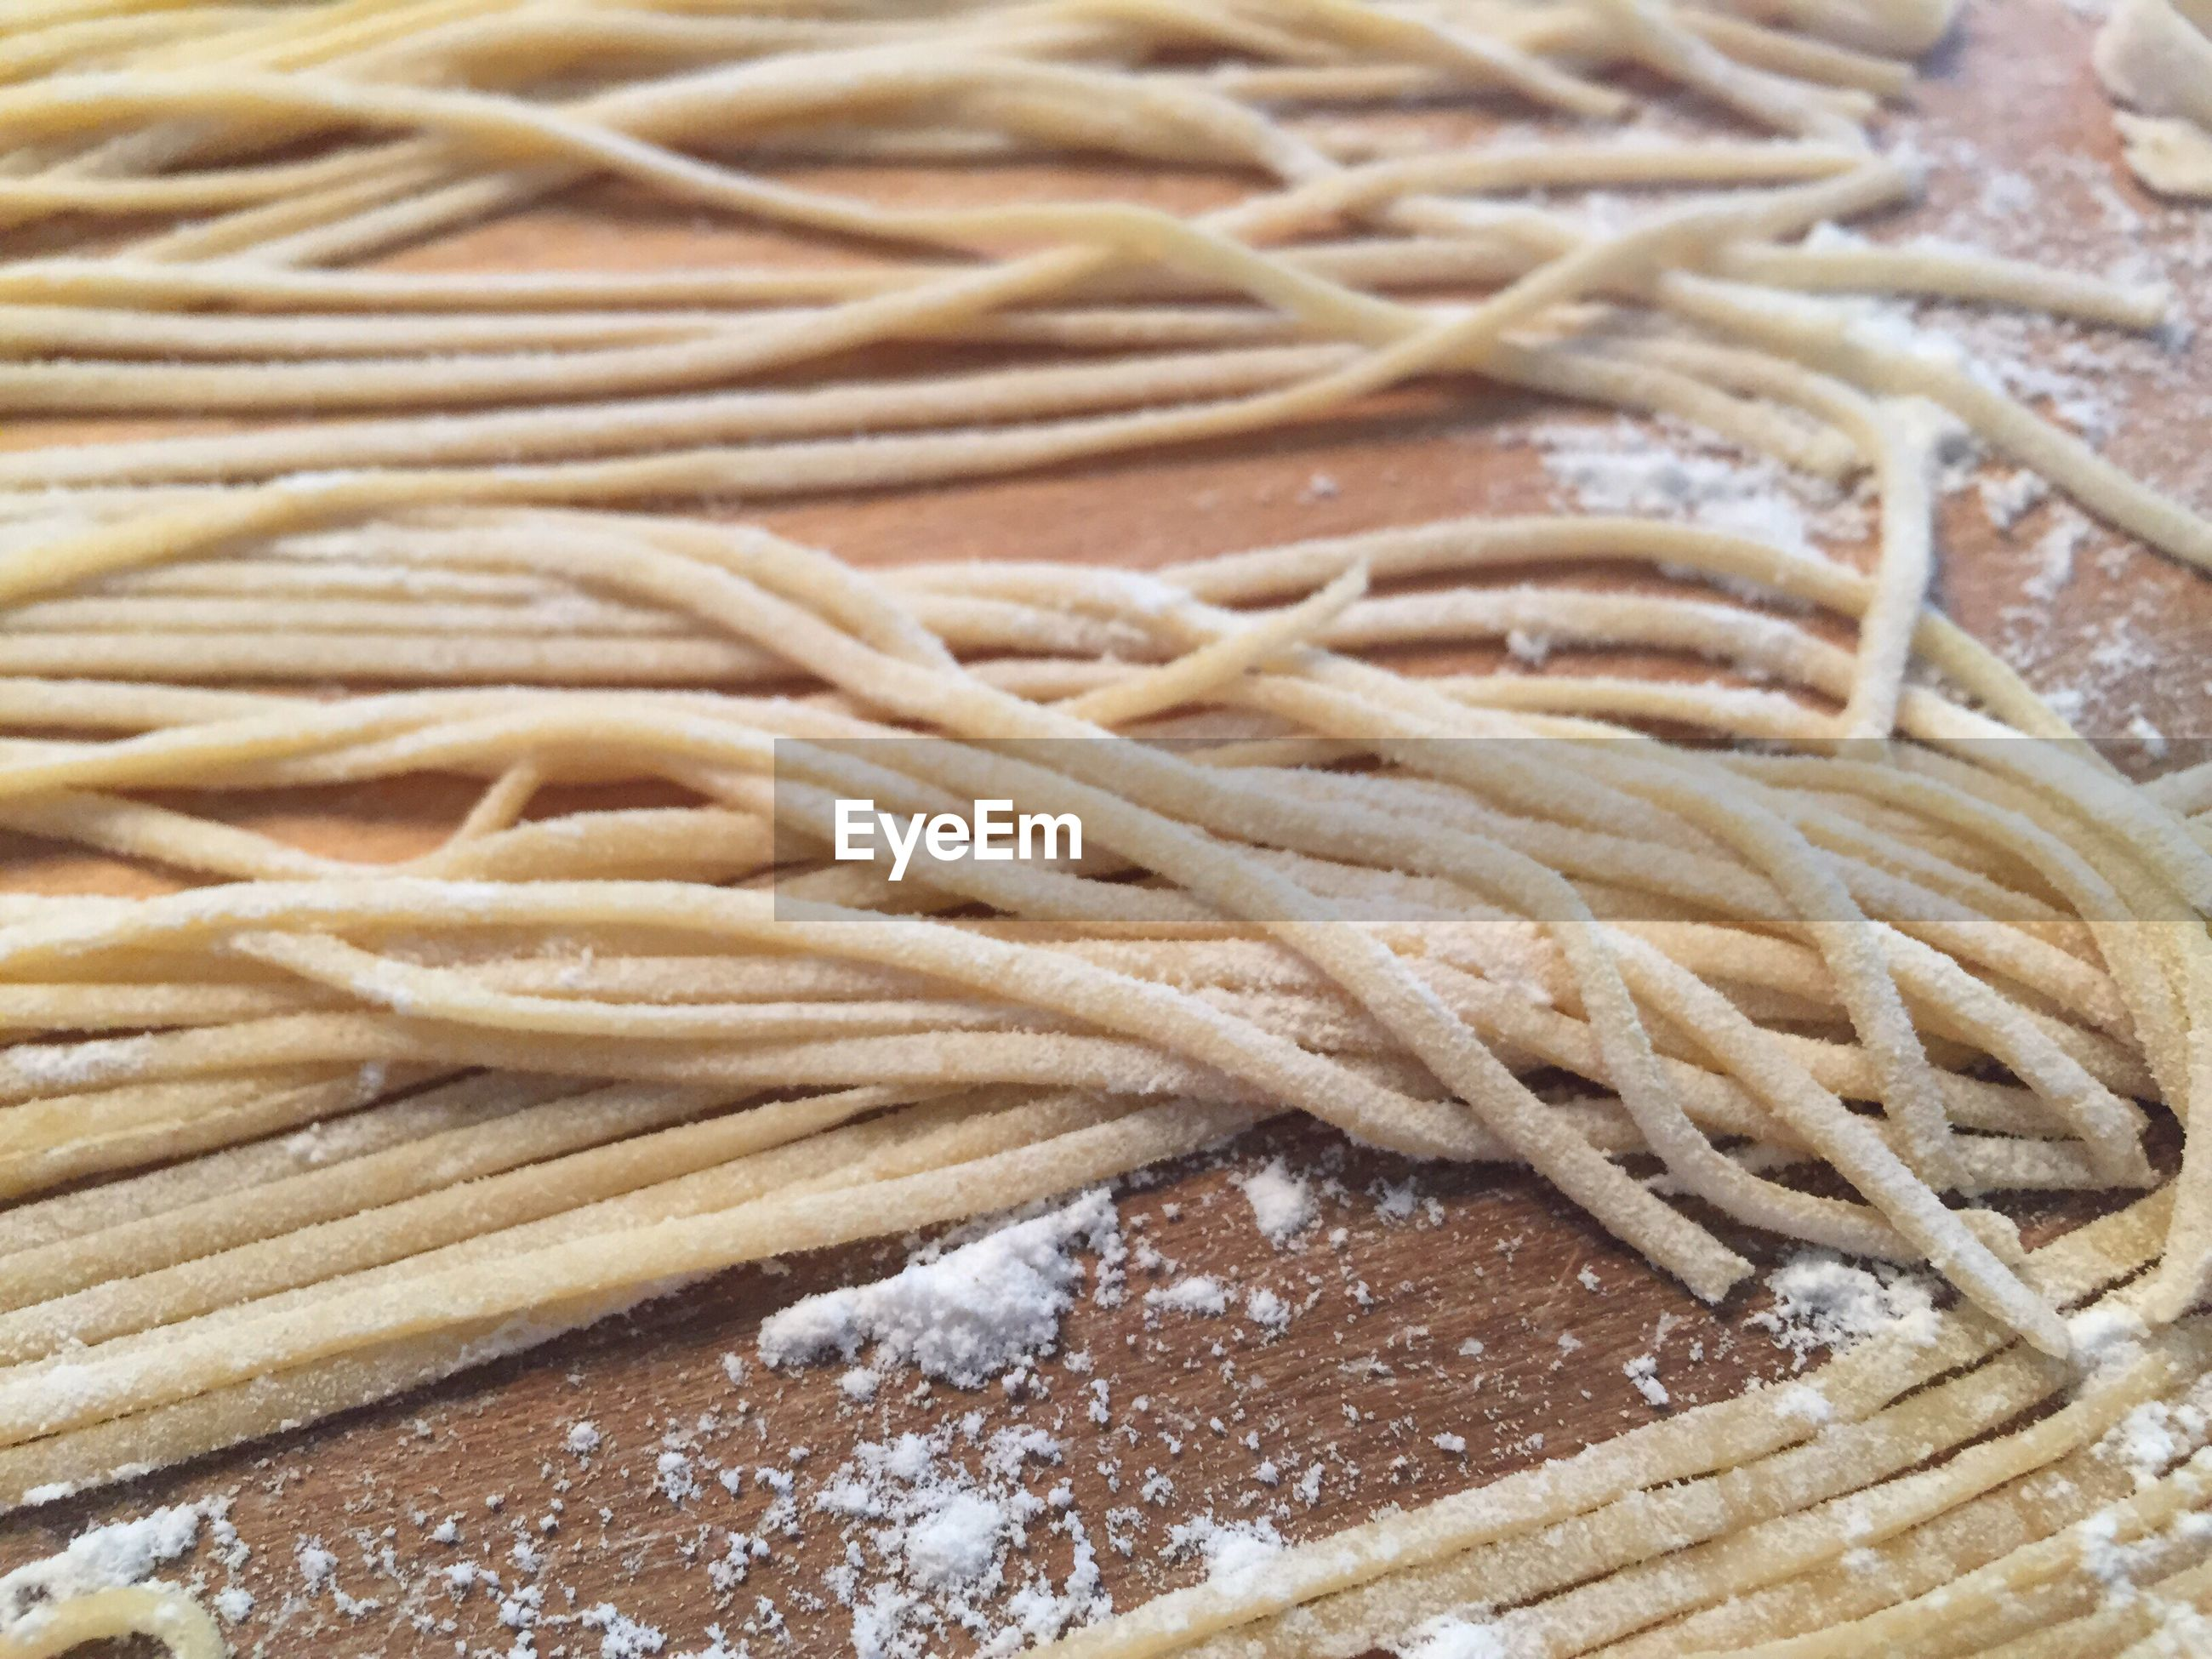 Close-up of noodles being made